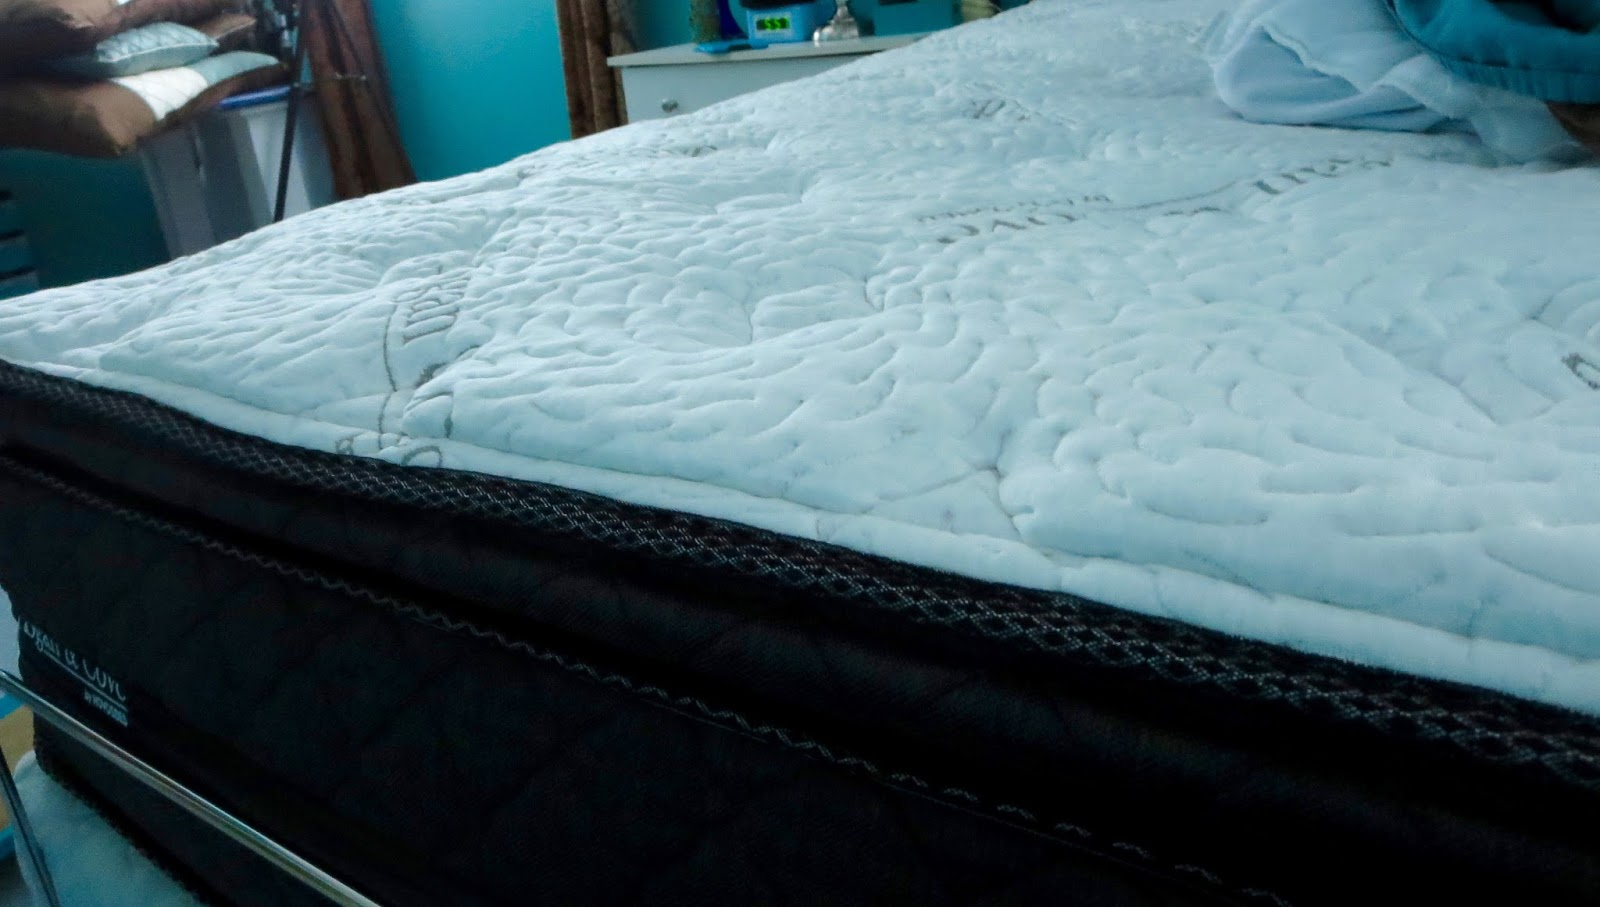 Walking, Way Overrated: Replacing A Mattress For Adjustable Bed ...